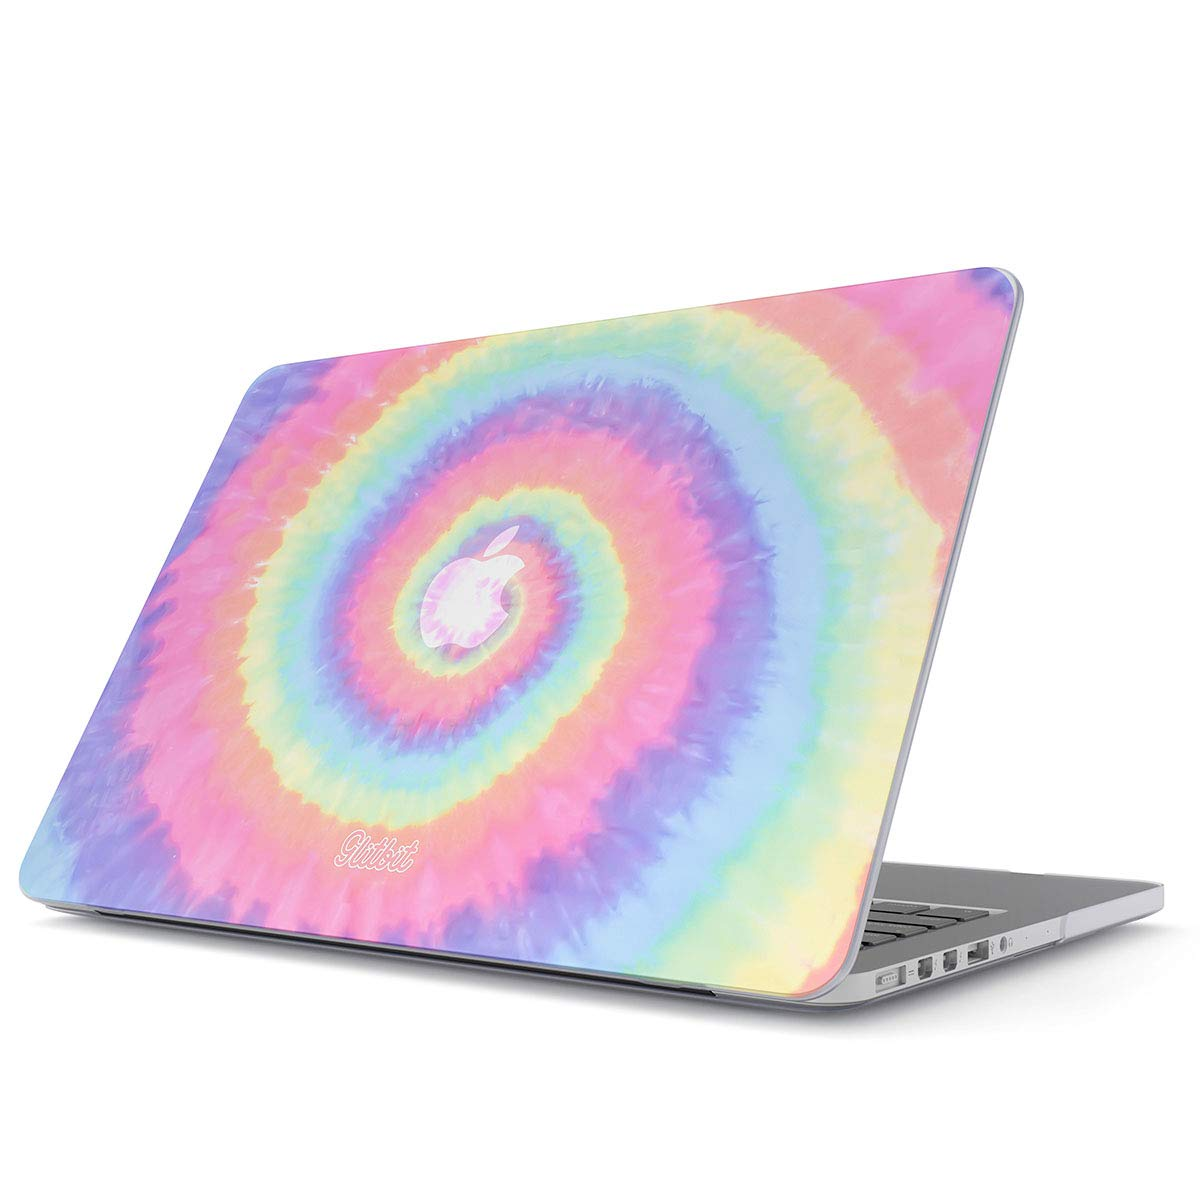 Glitbit Hard Case Cover Compatible with MacBook Air 13 inch Case Release 2018-2019, Model: A1932 with Retina Display and Touch ID Hipster Pastel Rainbow Colors Trippy Swirl Holography Pale